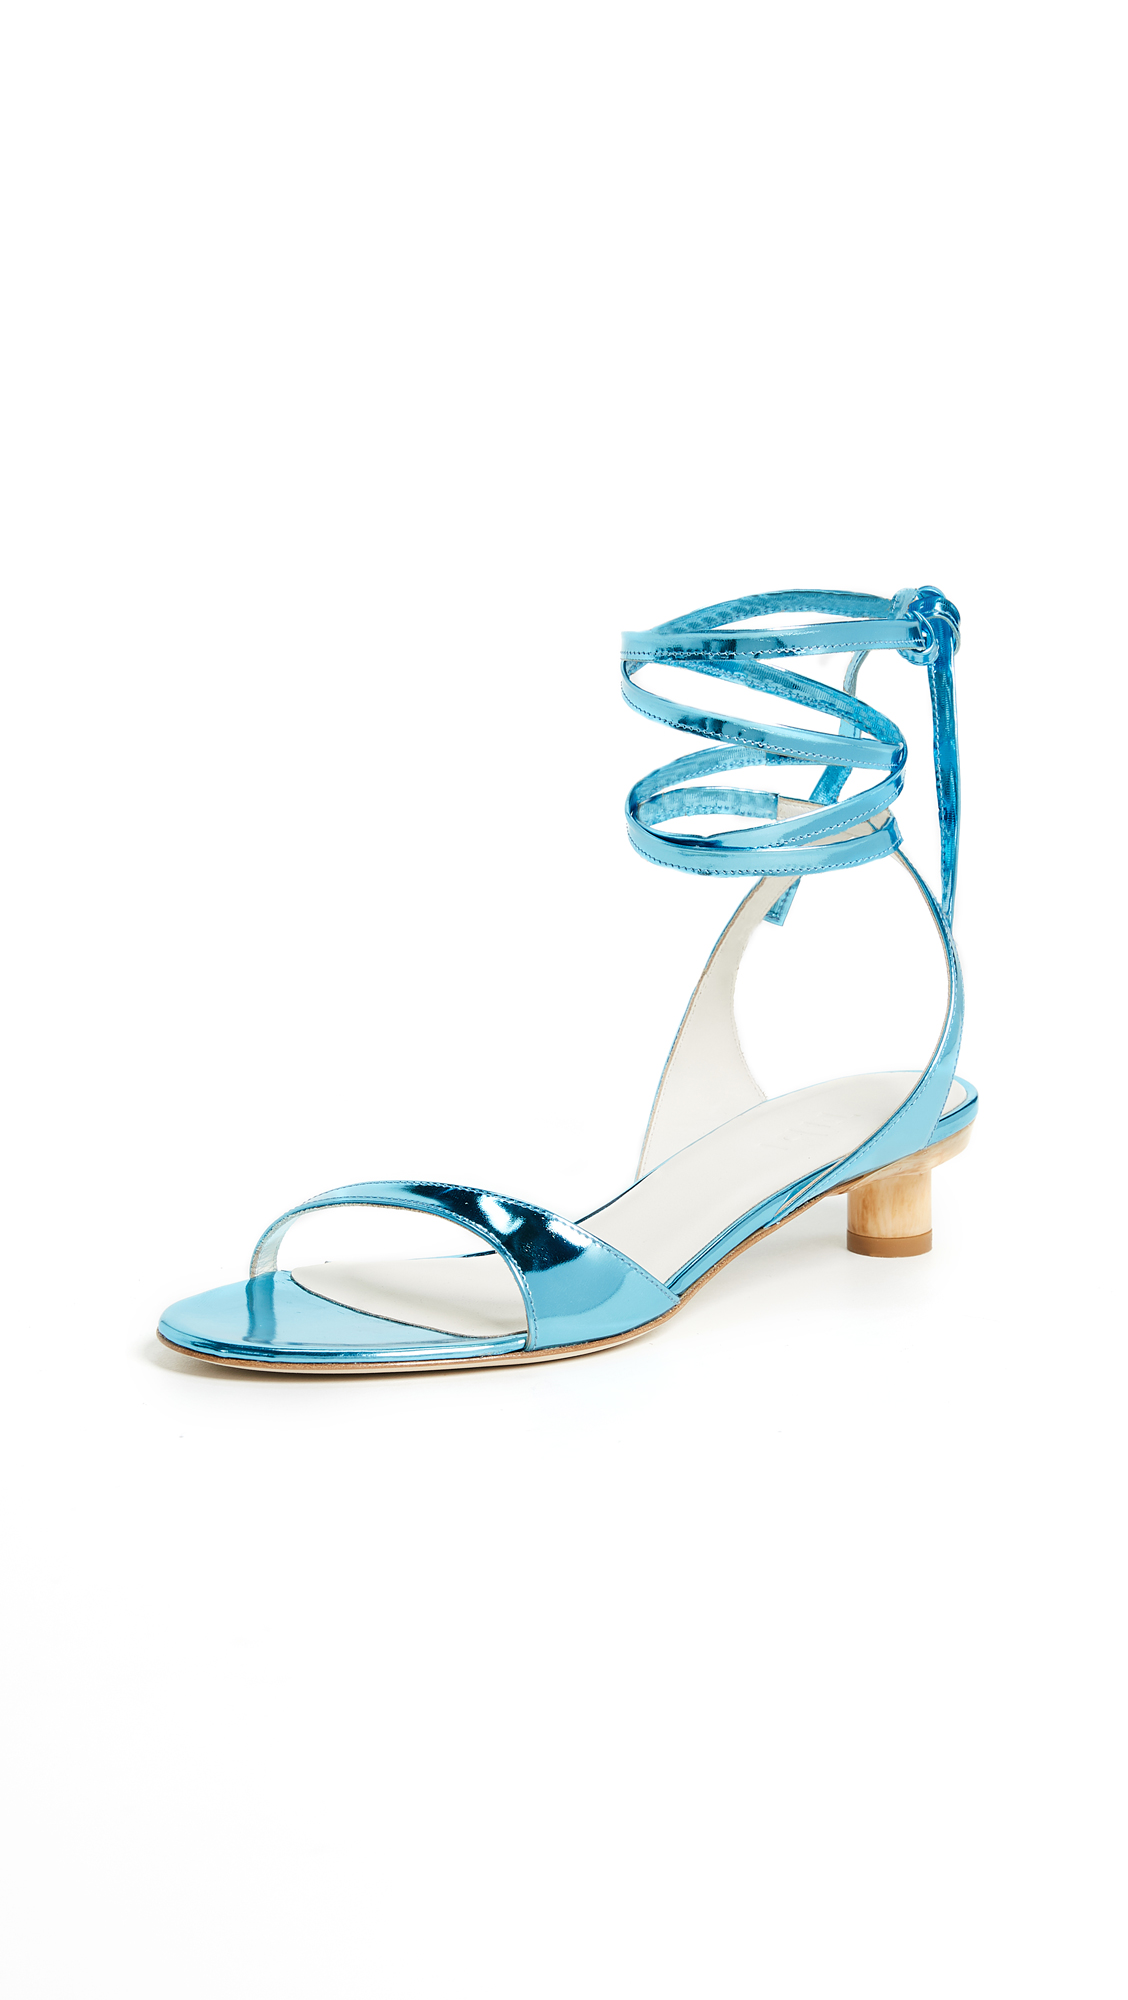 Tibi Scott City Sandals - Oxford Blue